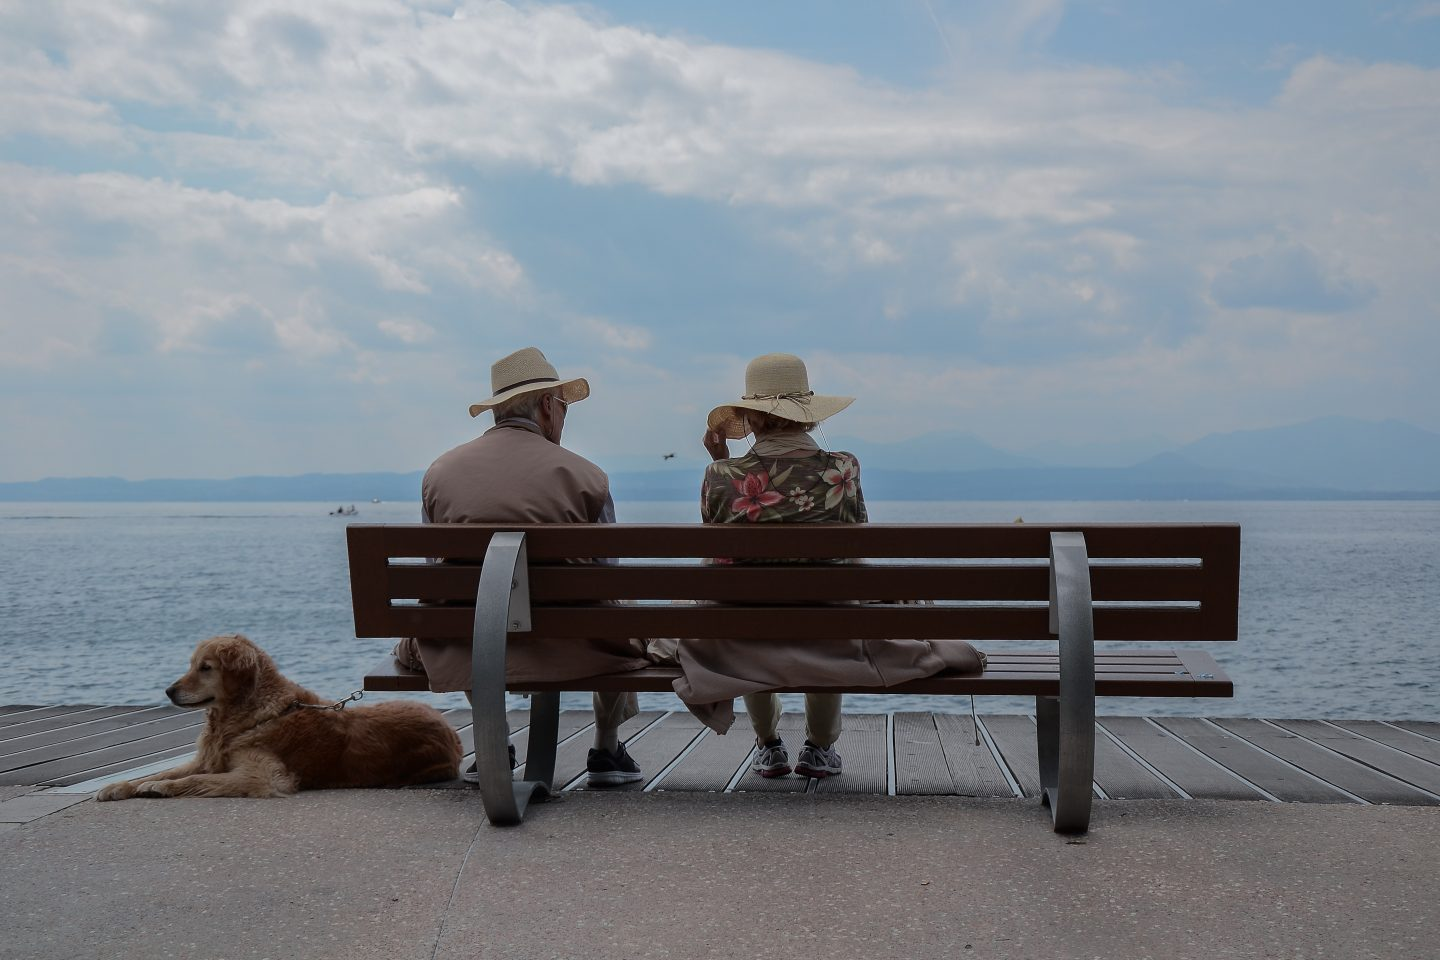 How To Achieve A More Fulfilling Retirement